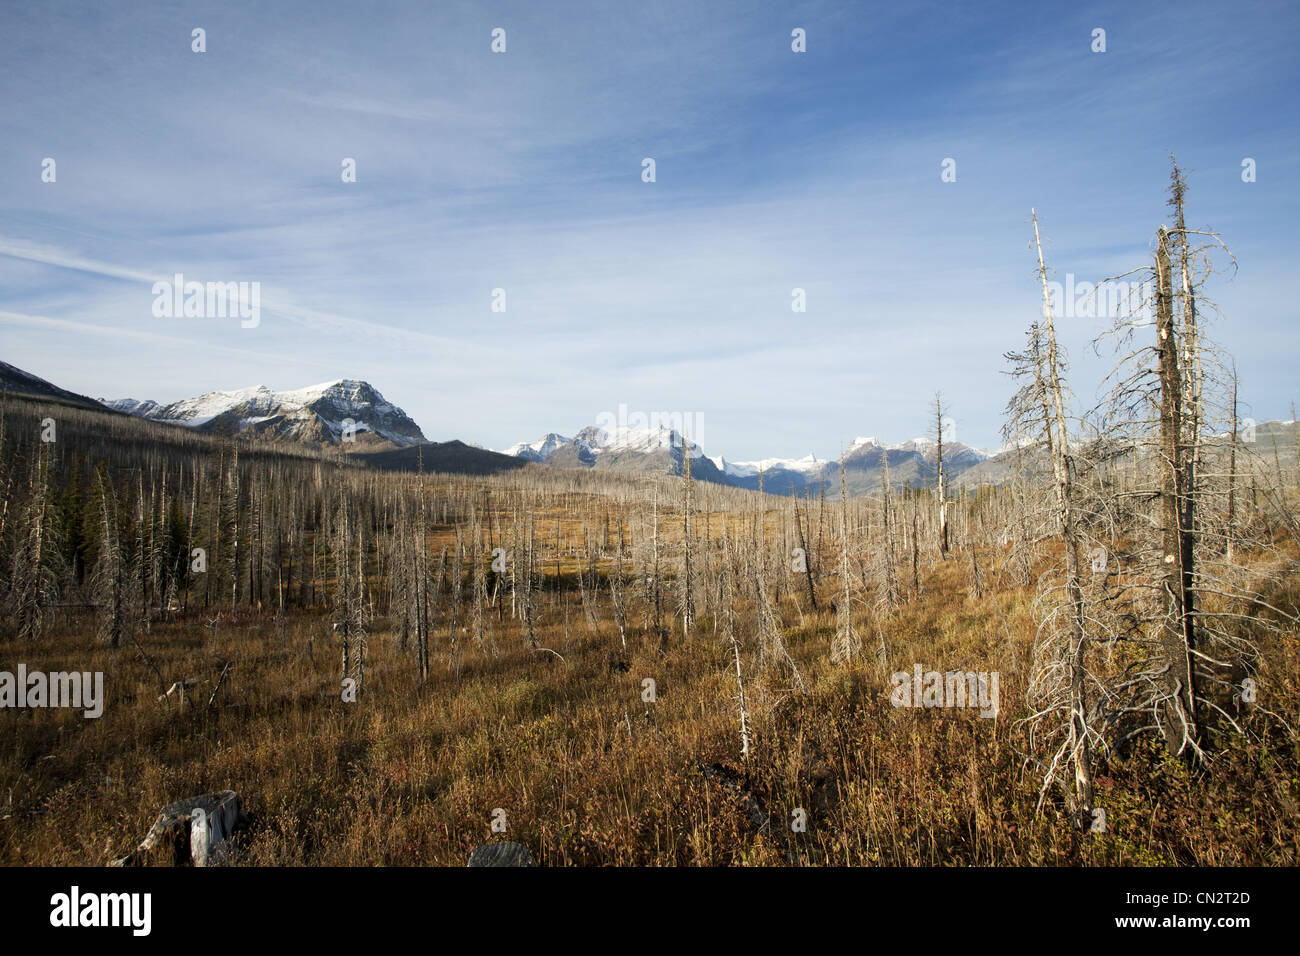 Dead Trees From Fire With Snow Covered Mountains in Background, Montana, USA - Stock Image